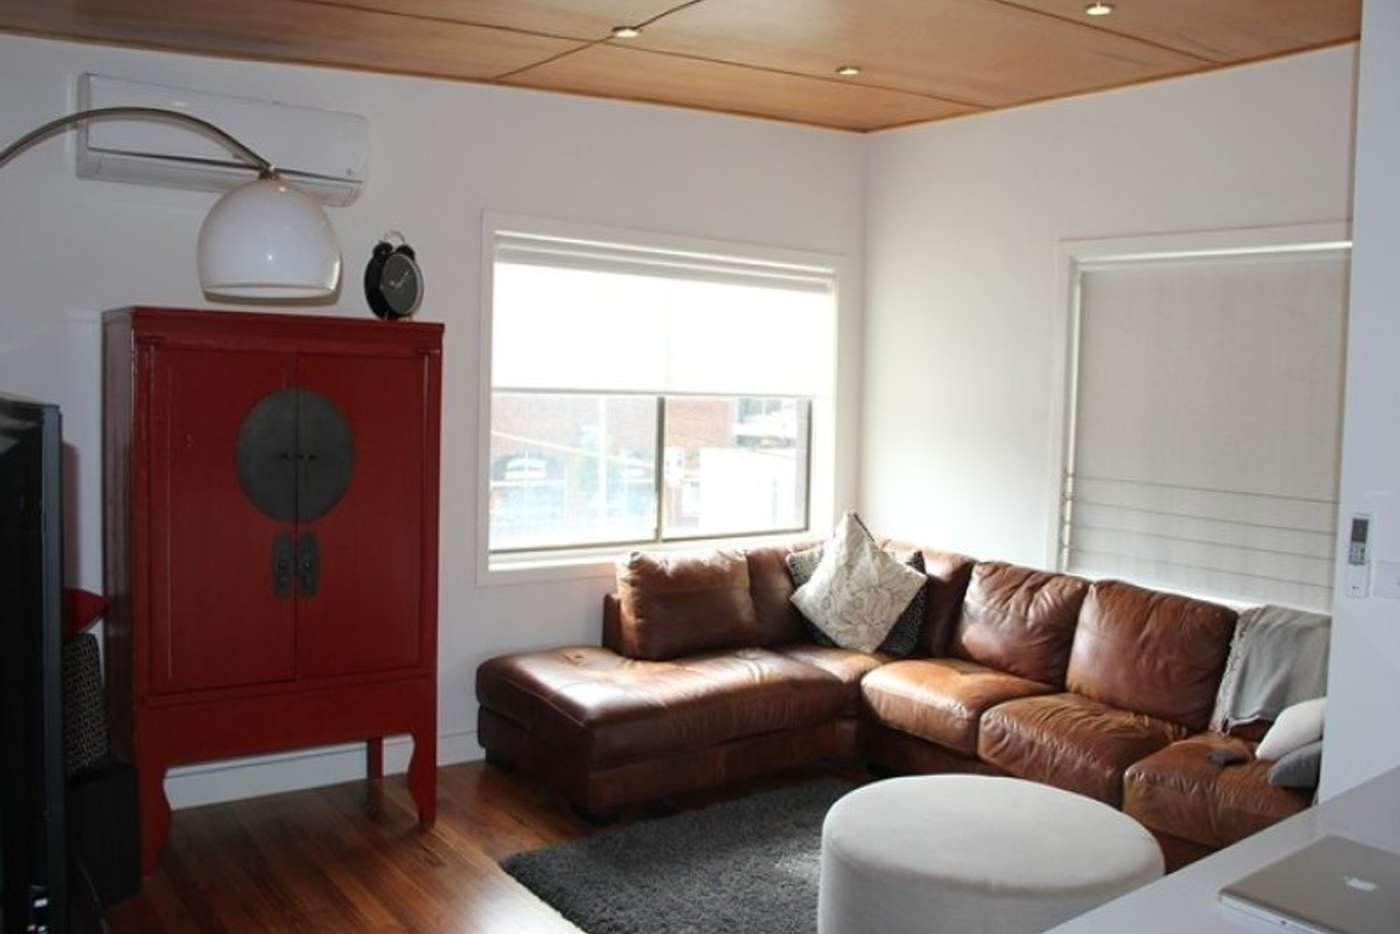 Main view of Homely townhouse listing, 182 Victoria Street, Seddon VIC 3011